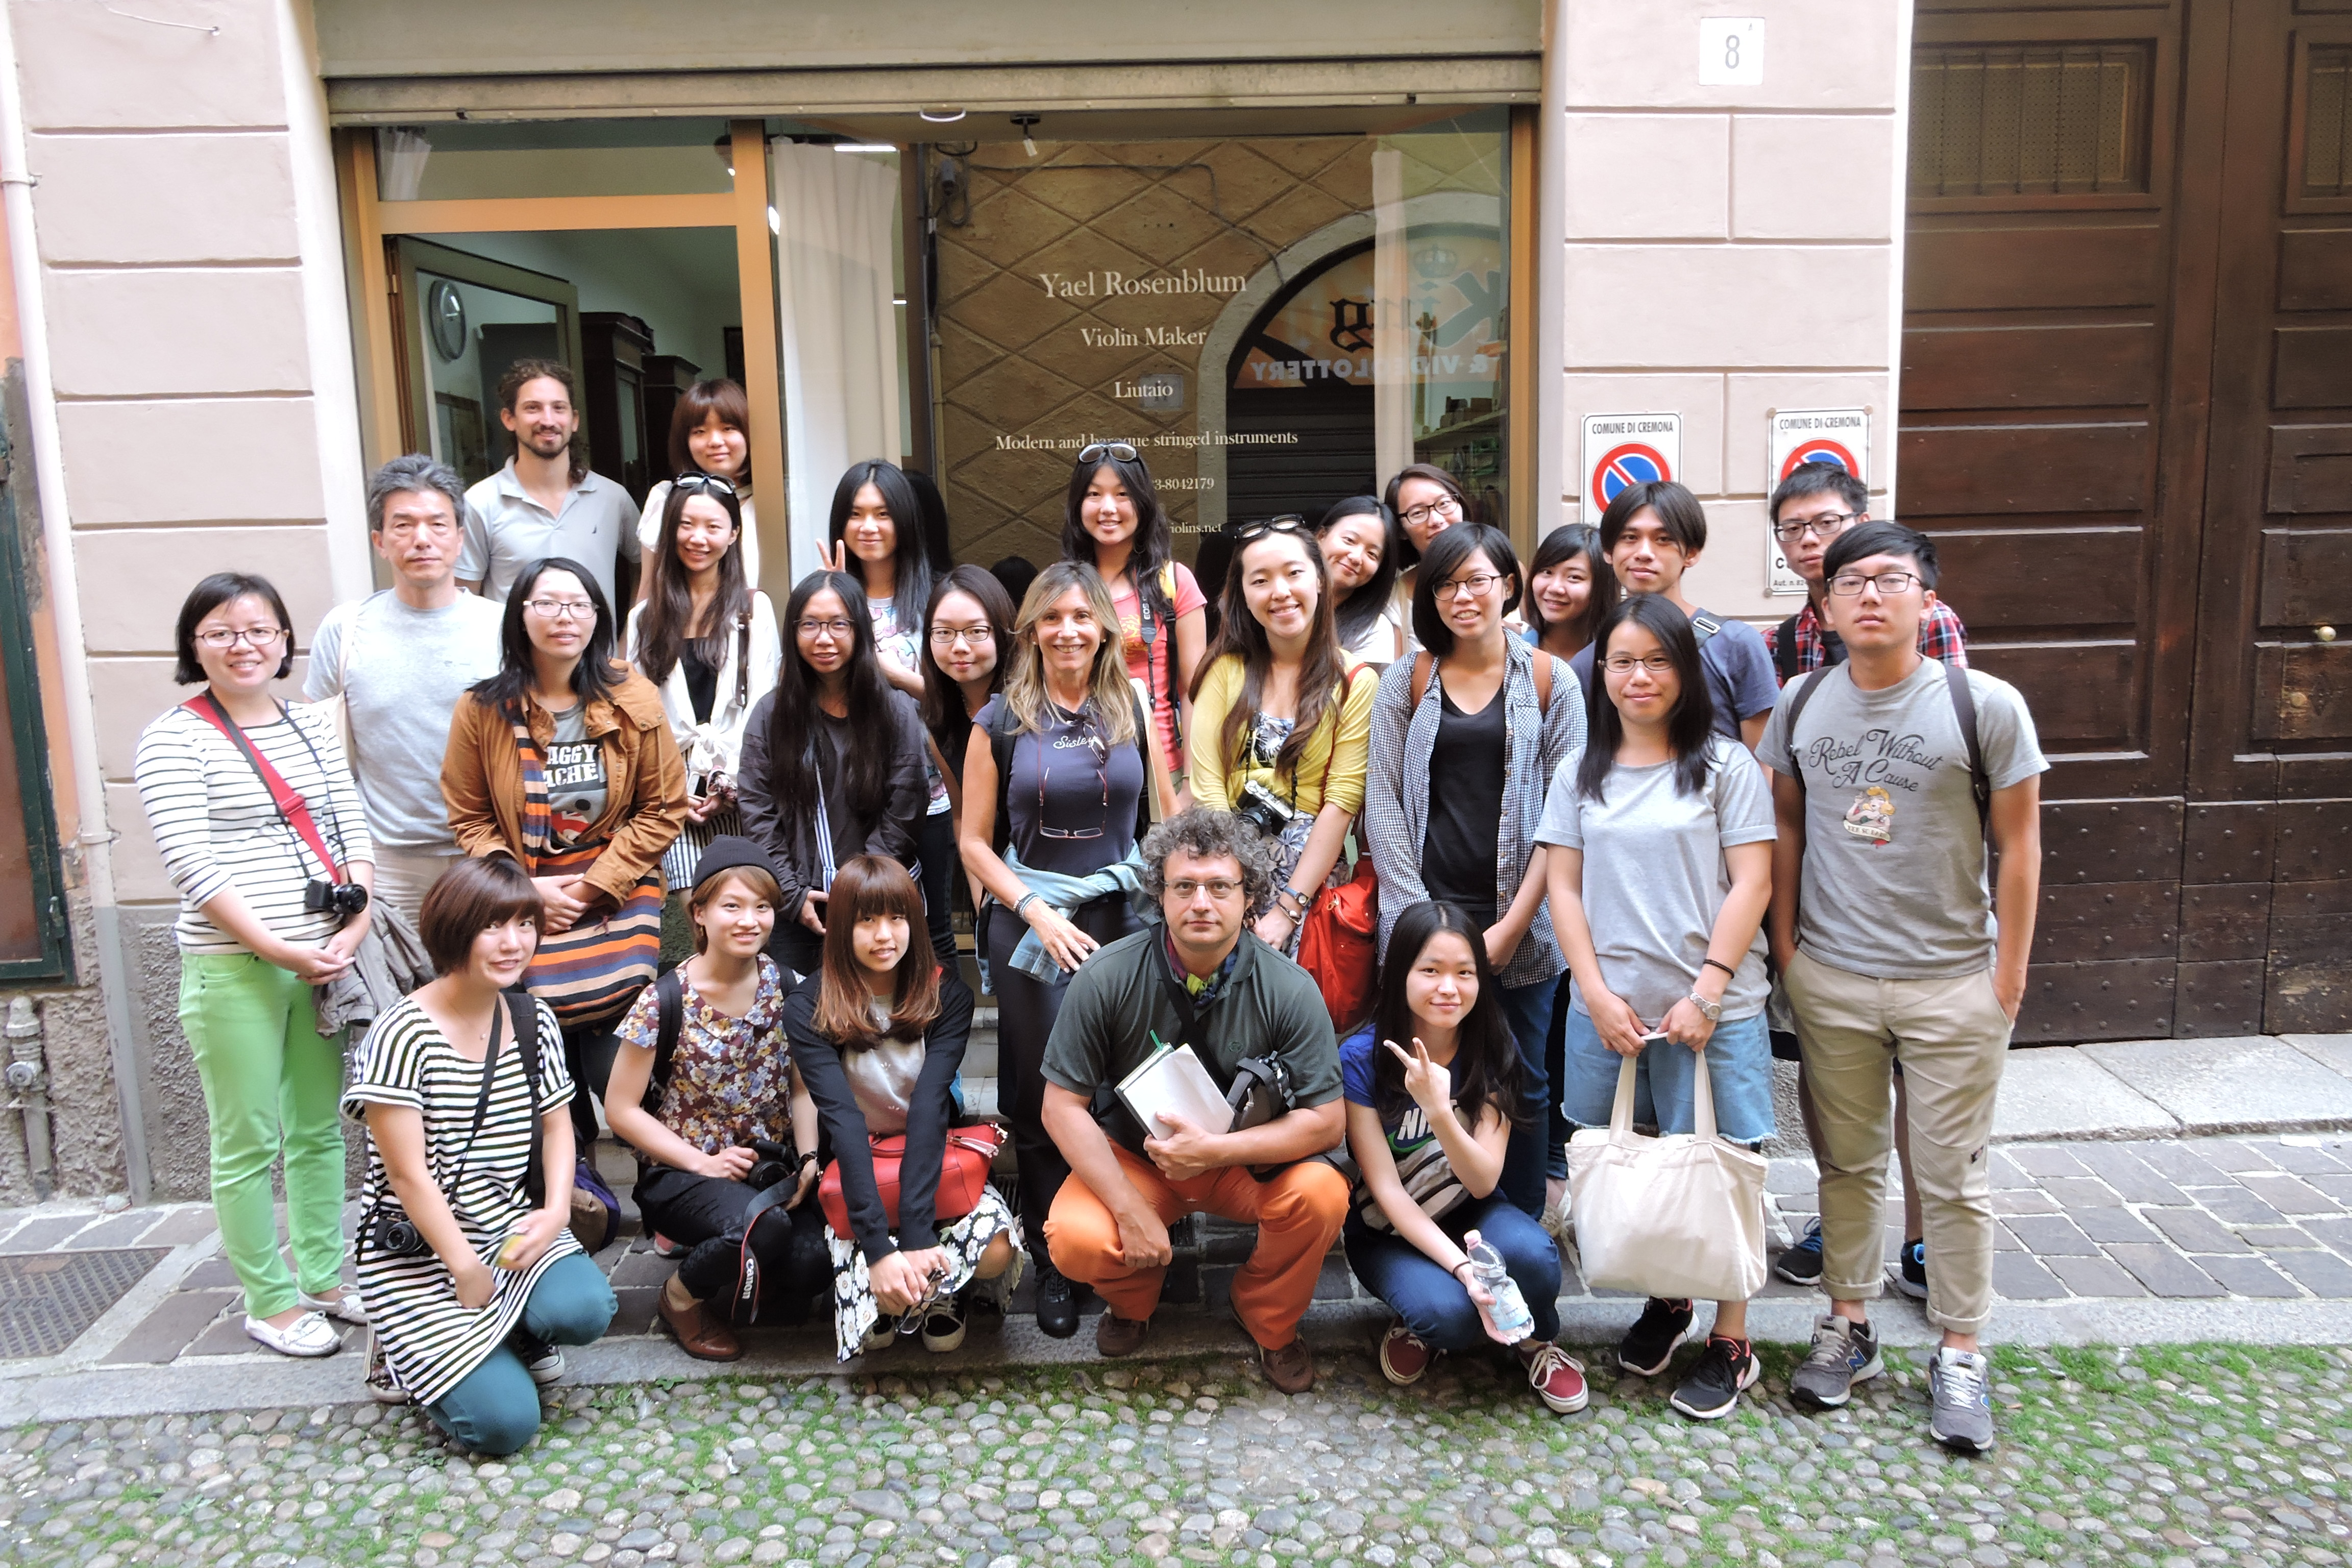 Visit at a Luthery in Cremona, Edition 2014